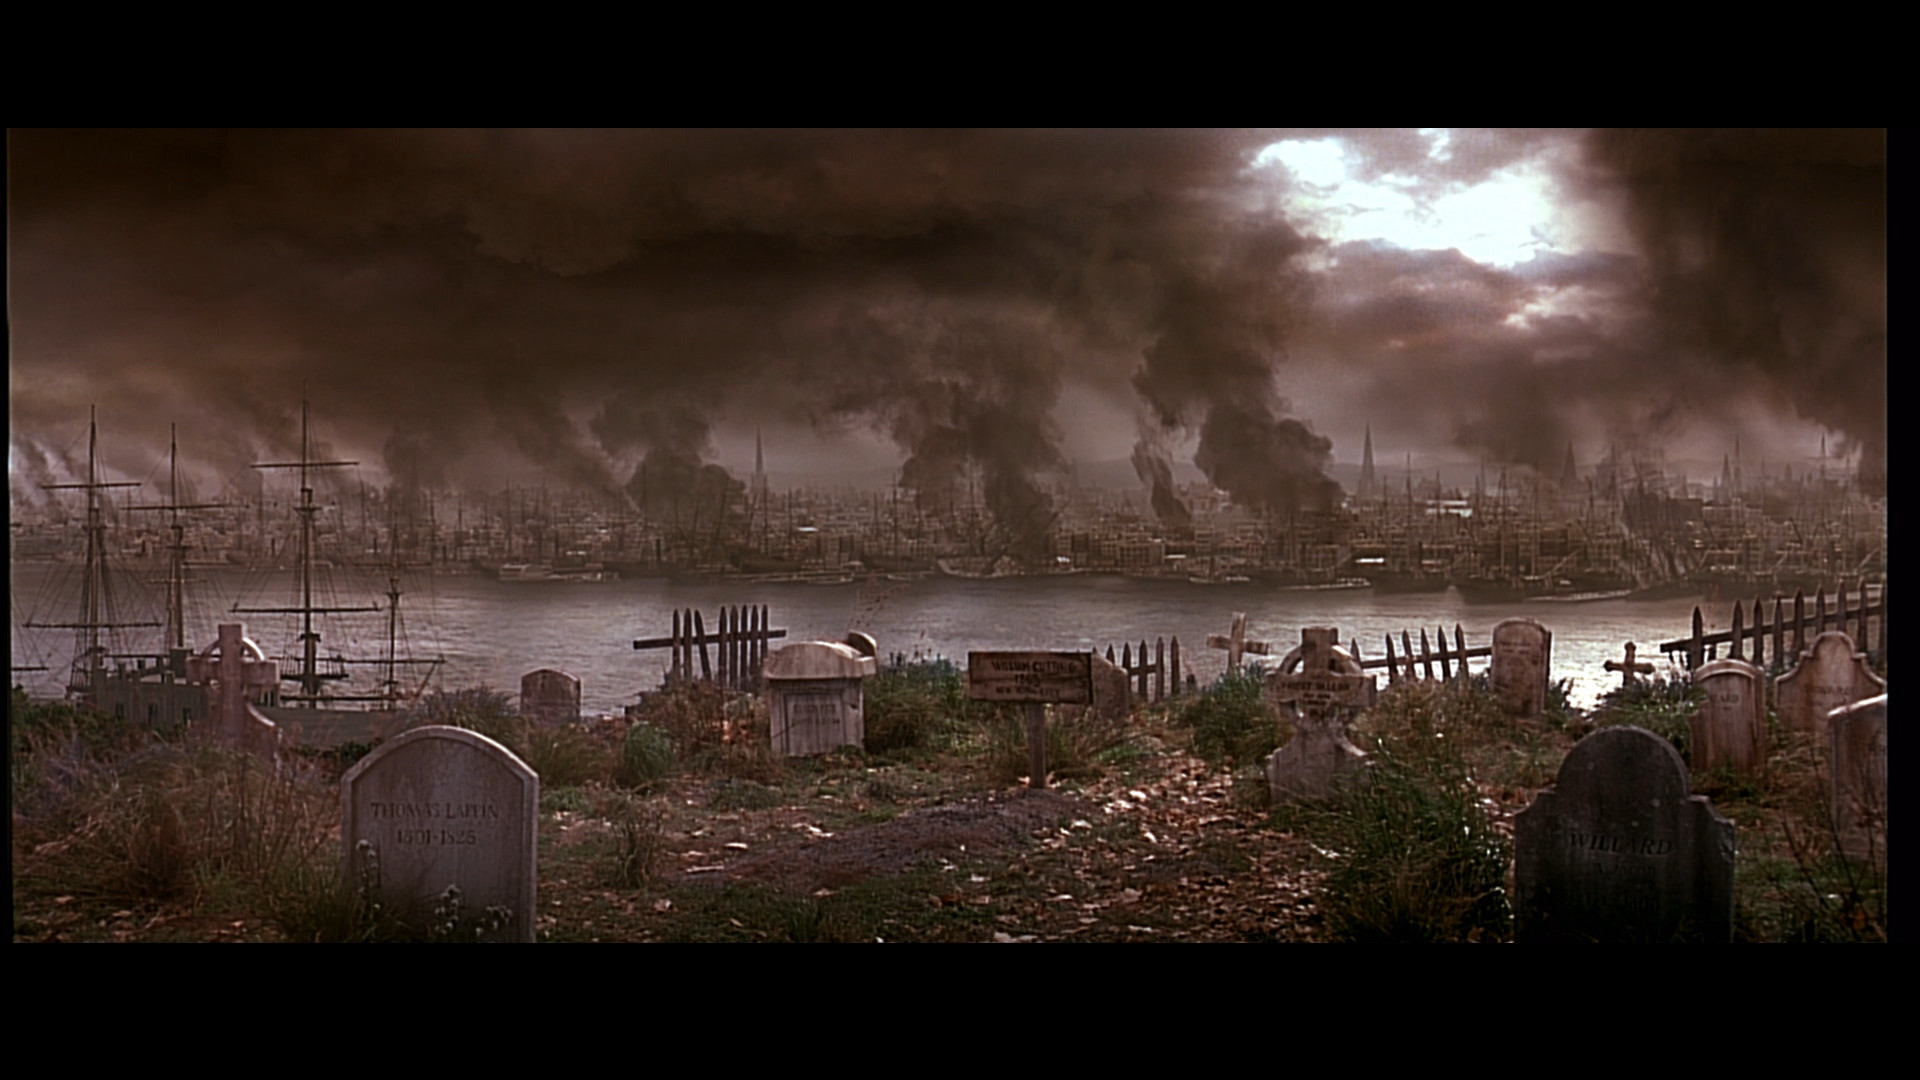 1920x1080 Gangs of New York (2002) end scene, New York City Draft Riots Aftermath